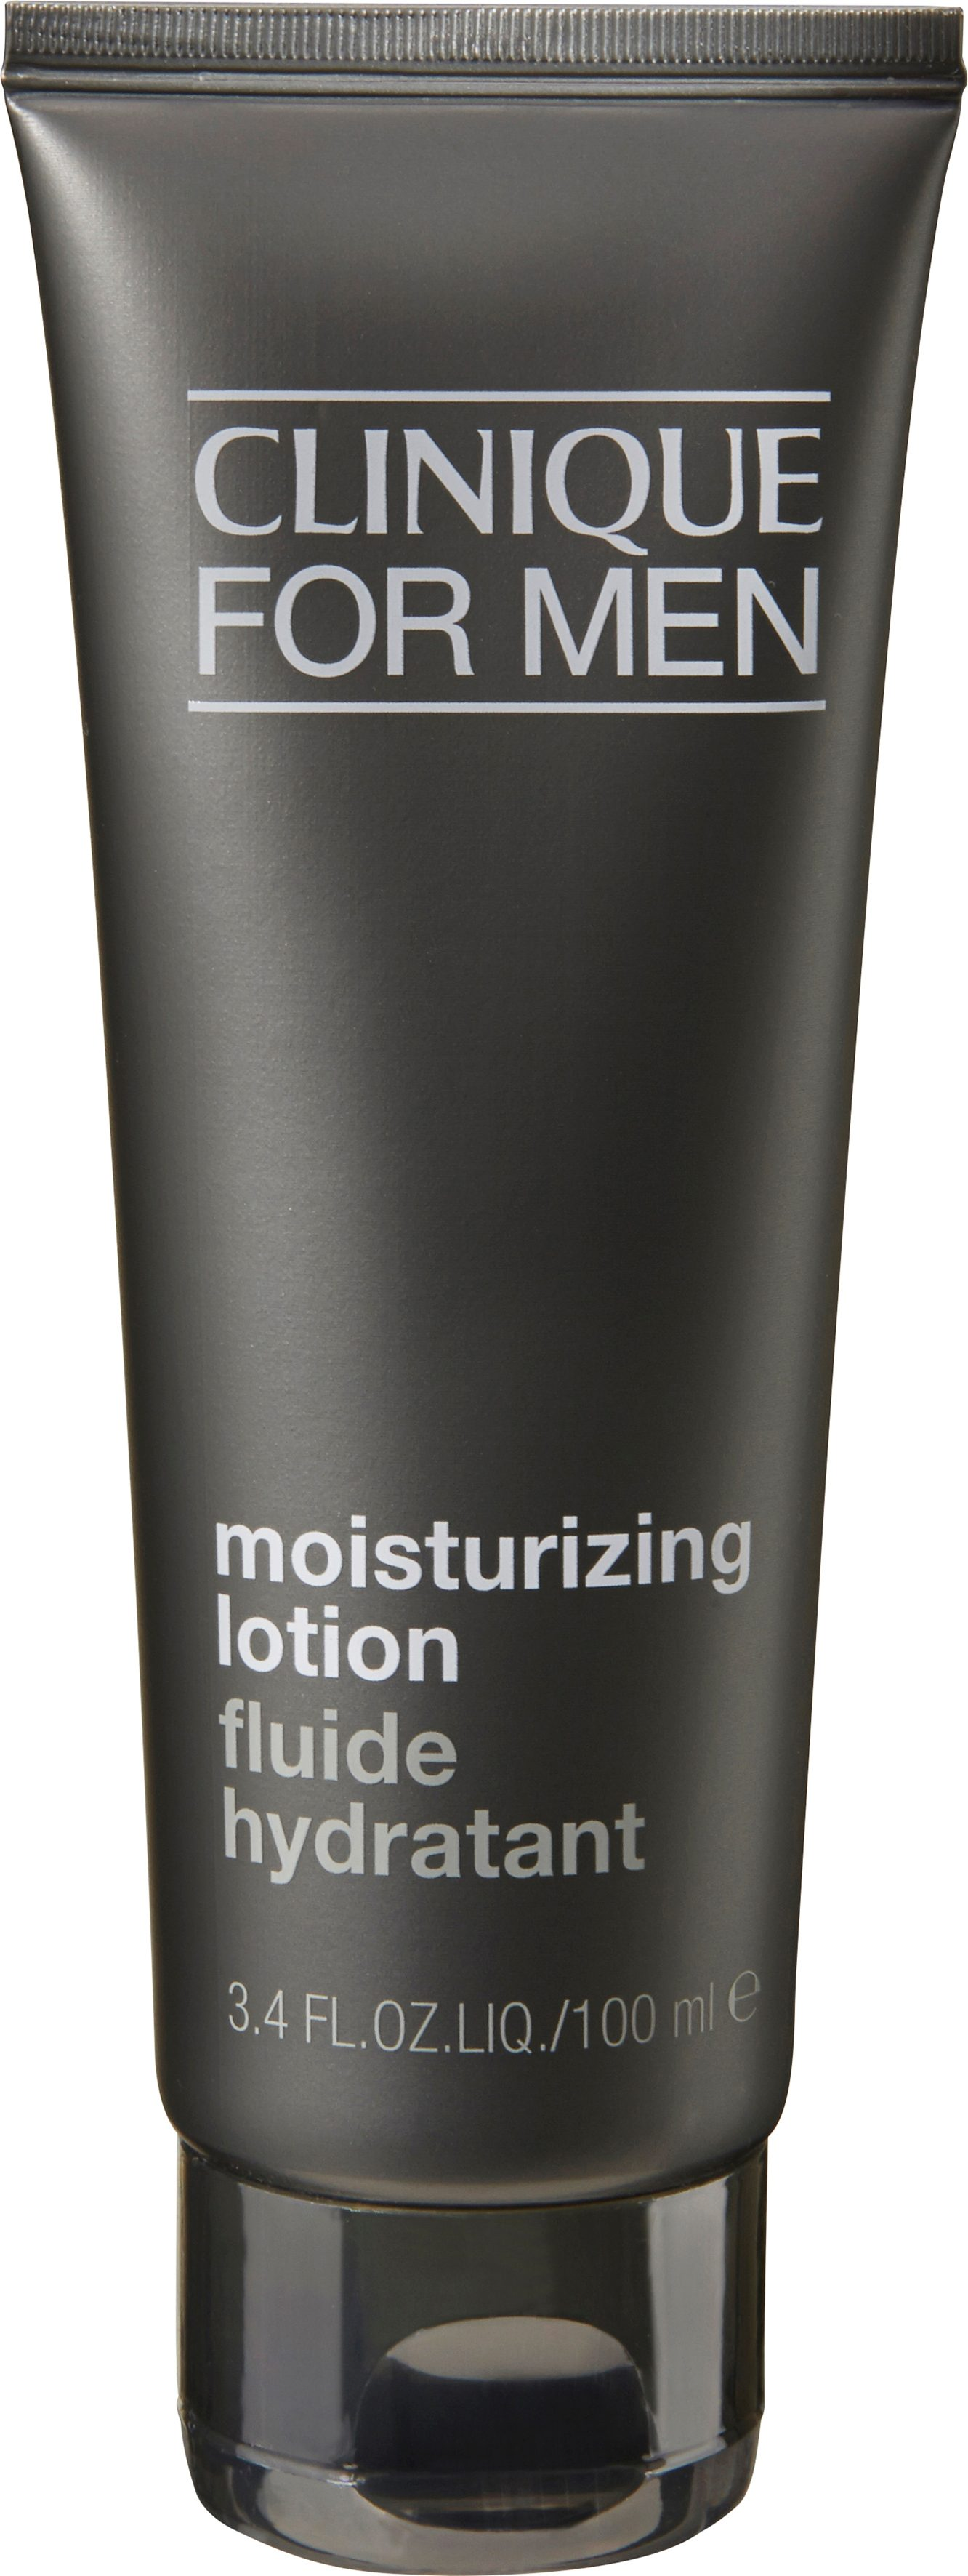 Clinique, »Moisturizing Lotion«, Gesichtslotion